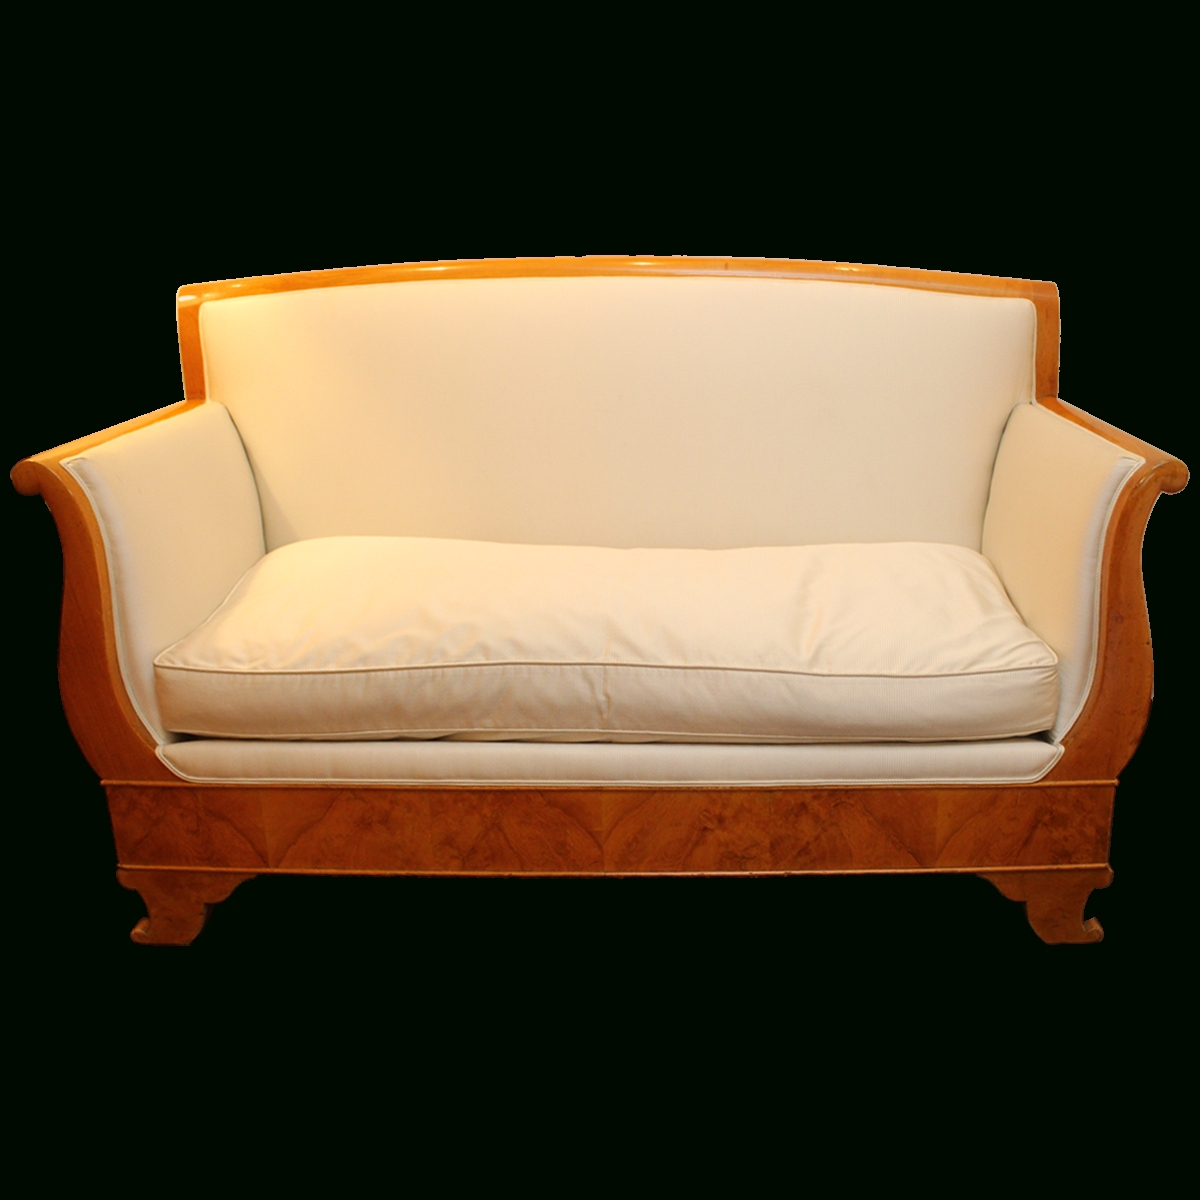 Viyet - Designer Furniture - Seating - Antique Cream Biedermeier Sofa for Biedermeier Sofas